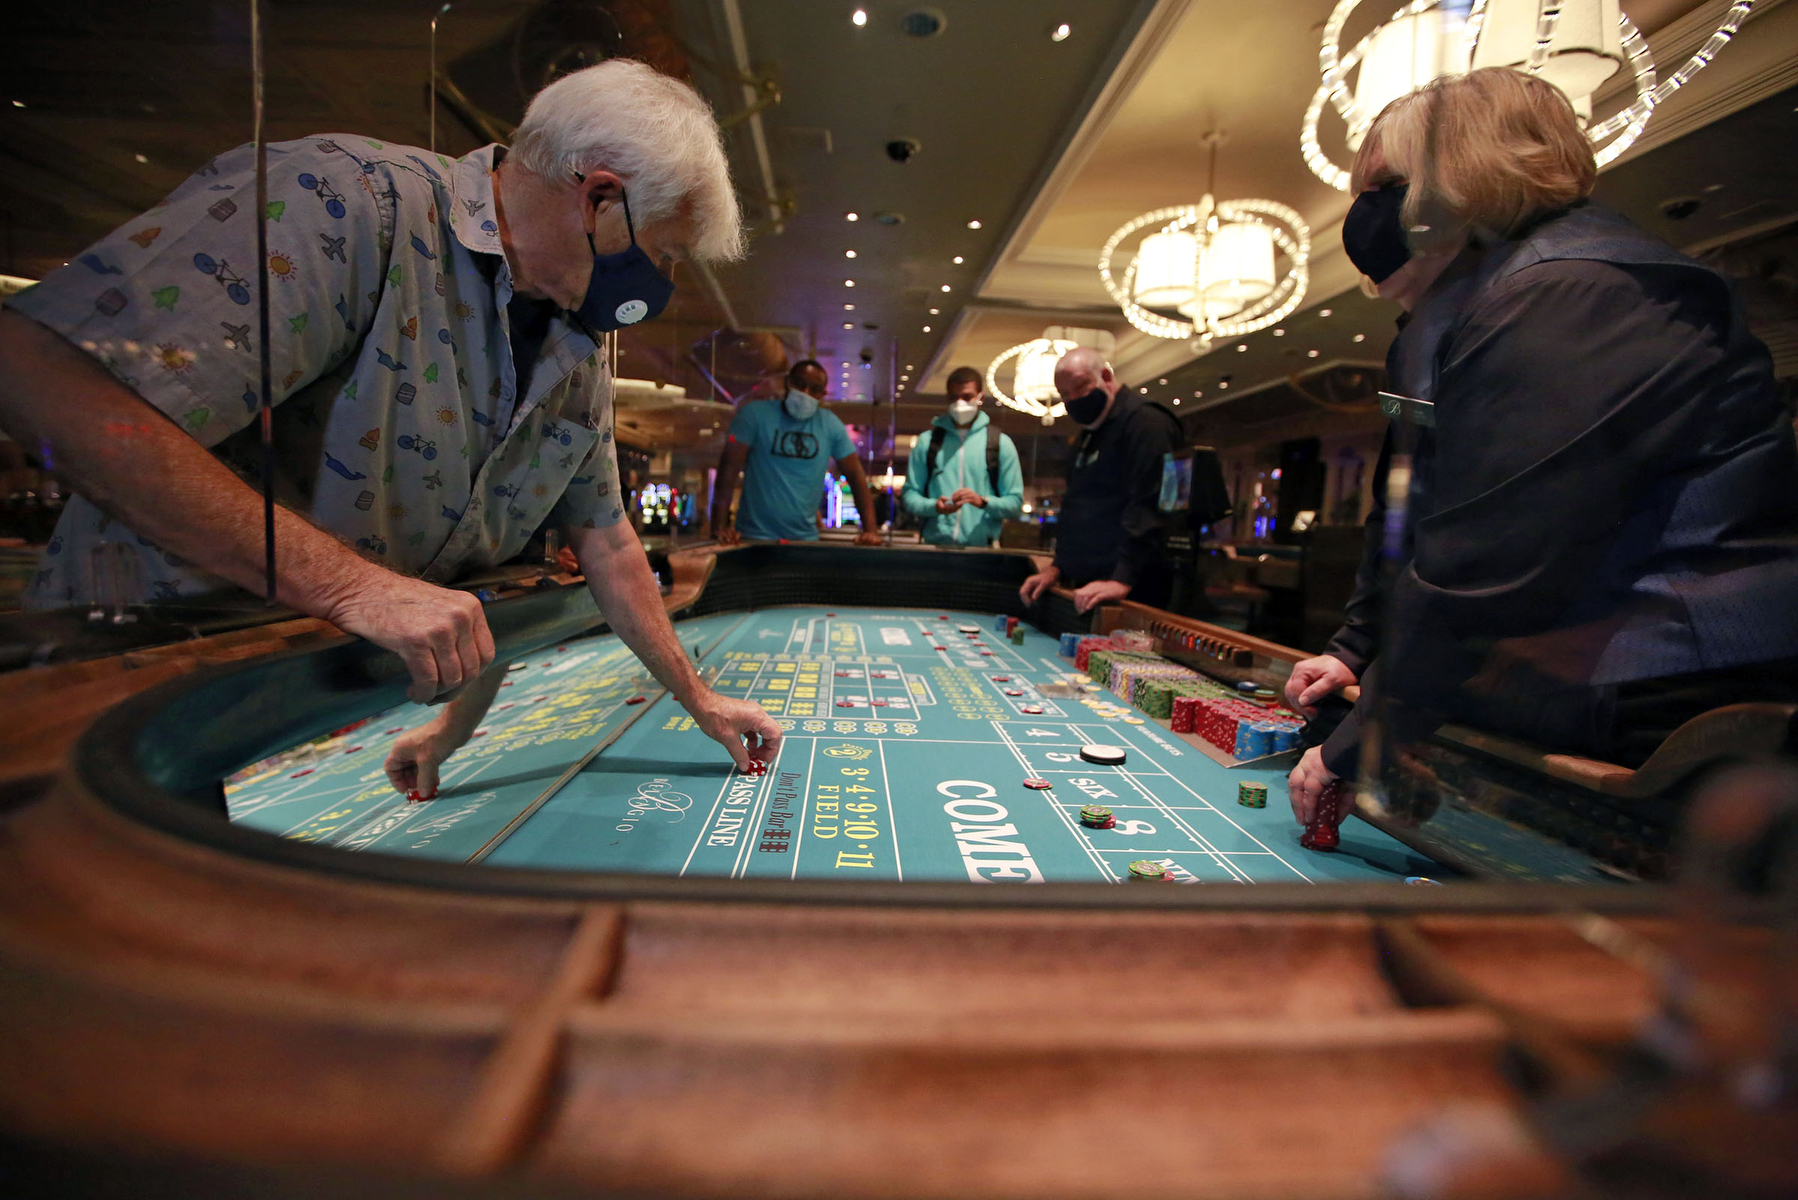 Gene Koonce (cq), left, of Drake, Colorado, plays craps at the reopening of Bellagio hotel-casino Thursday, June 4, 2020, in Las Vegas. (Photo by Ronda Churchill/AFP)